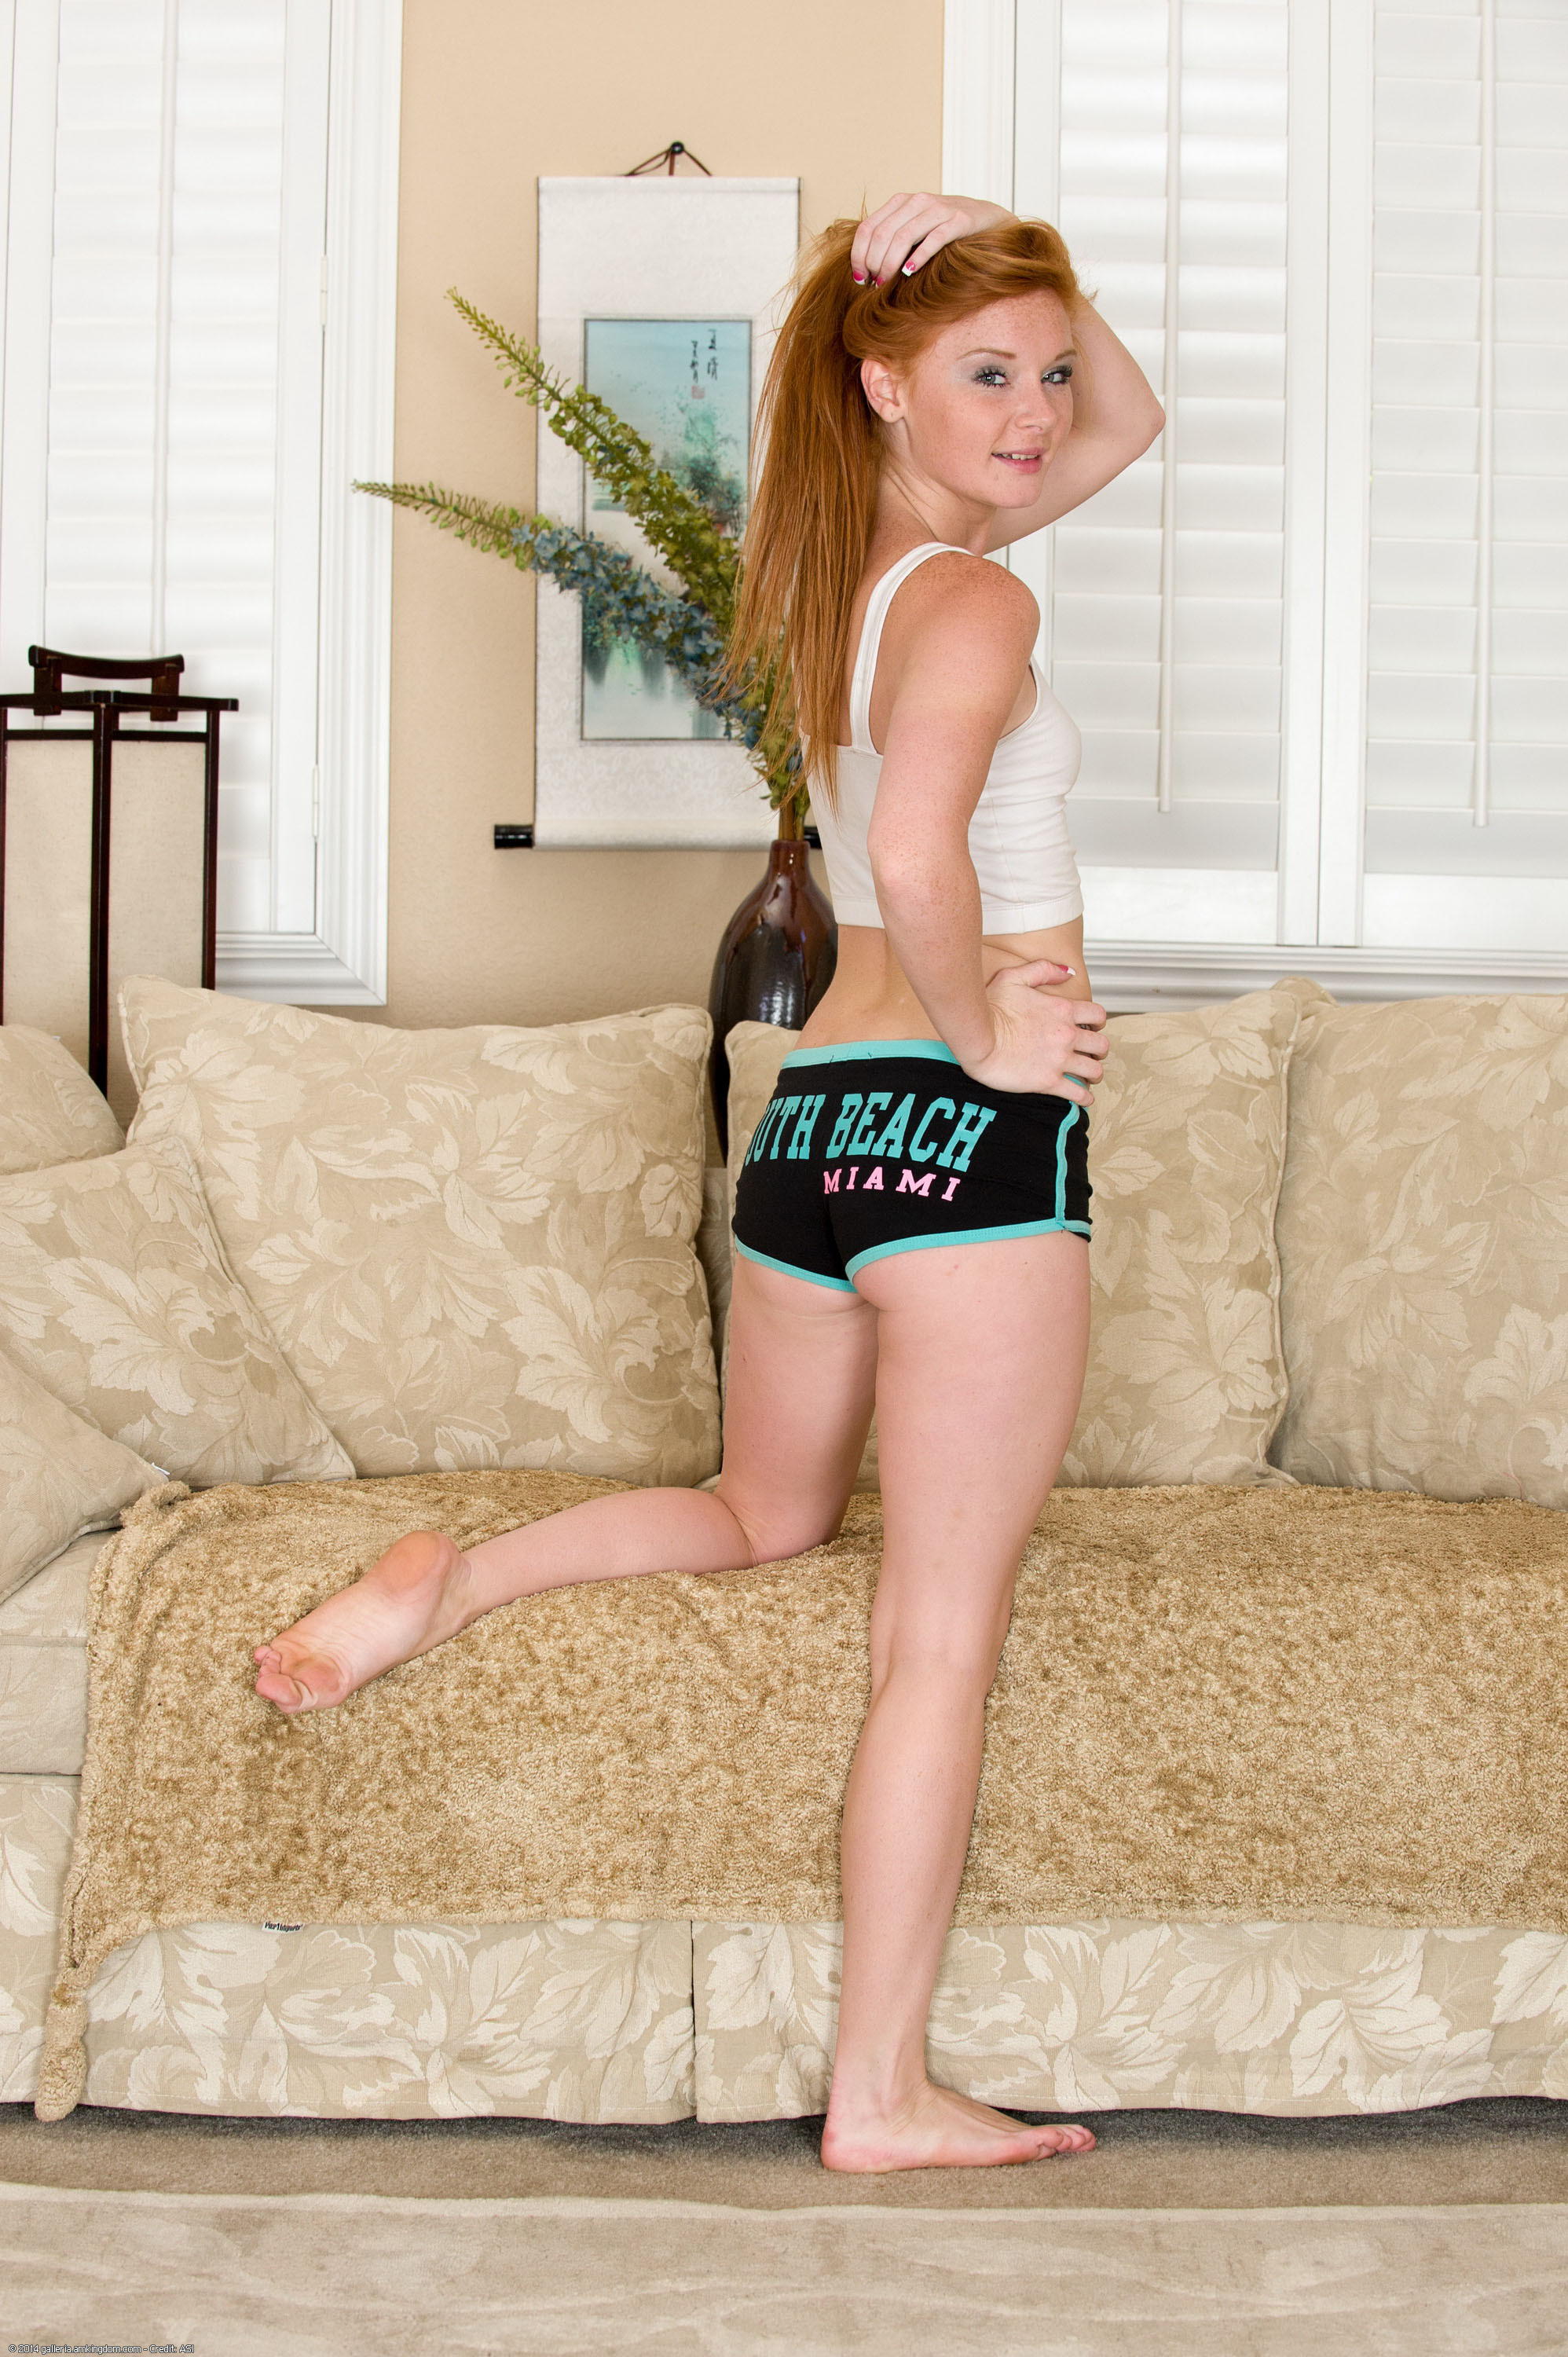 Redhead teen girl Alex Tanner flashes her tiny tits and ass against a wall № 1544291 без смс